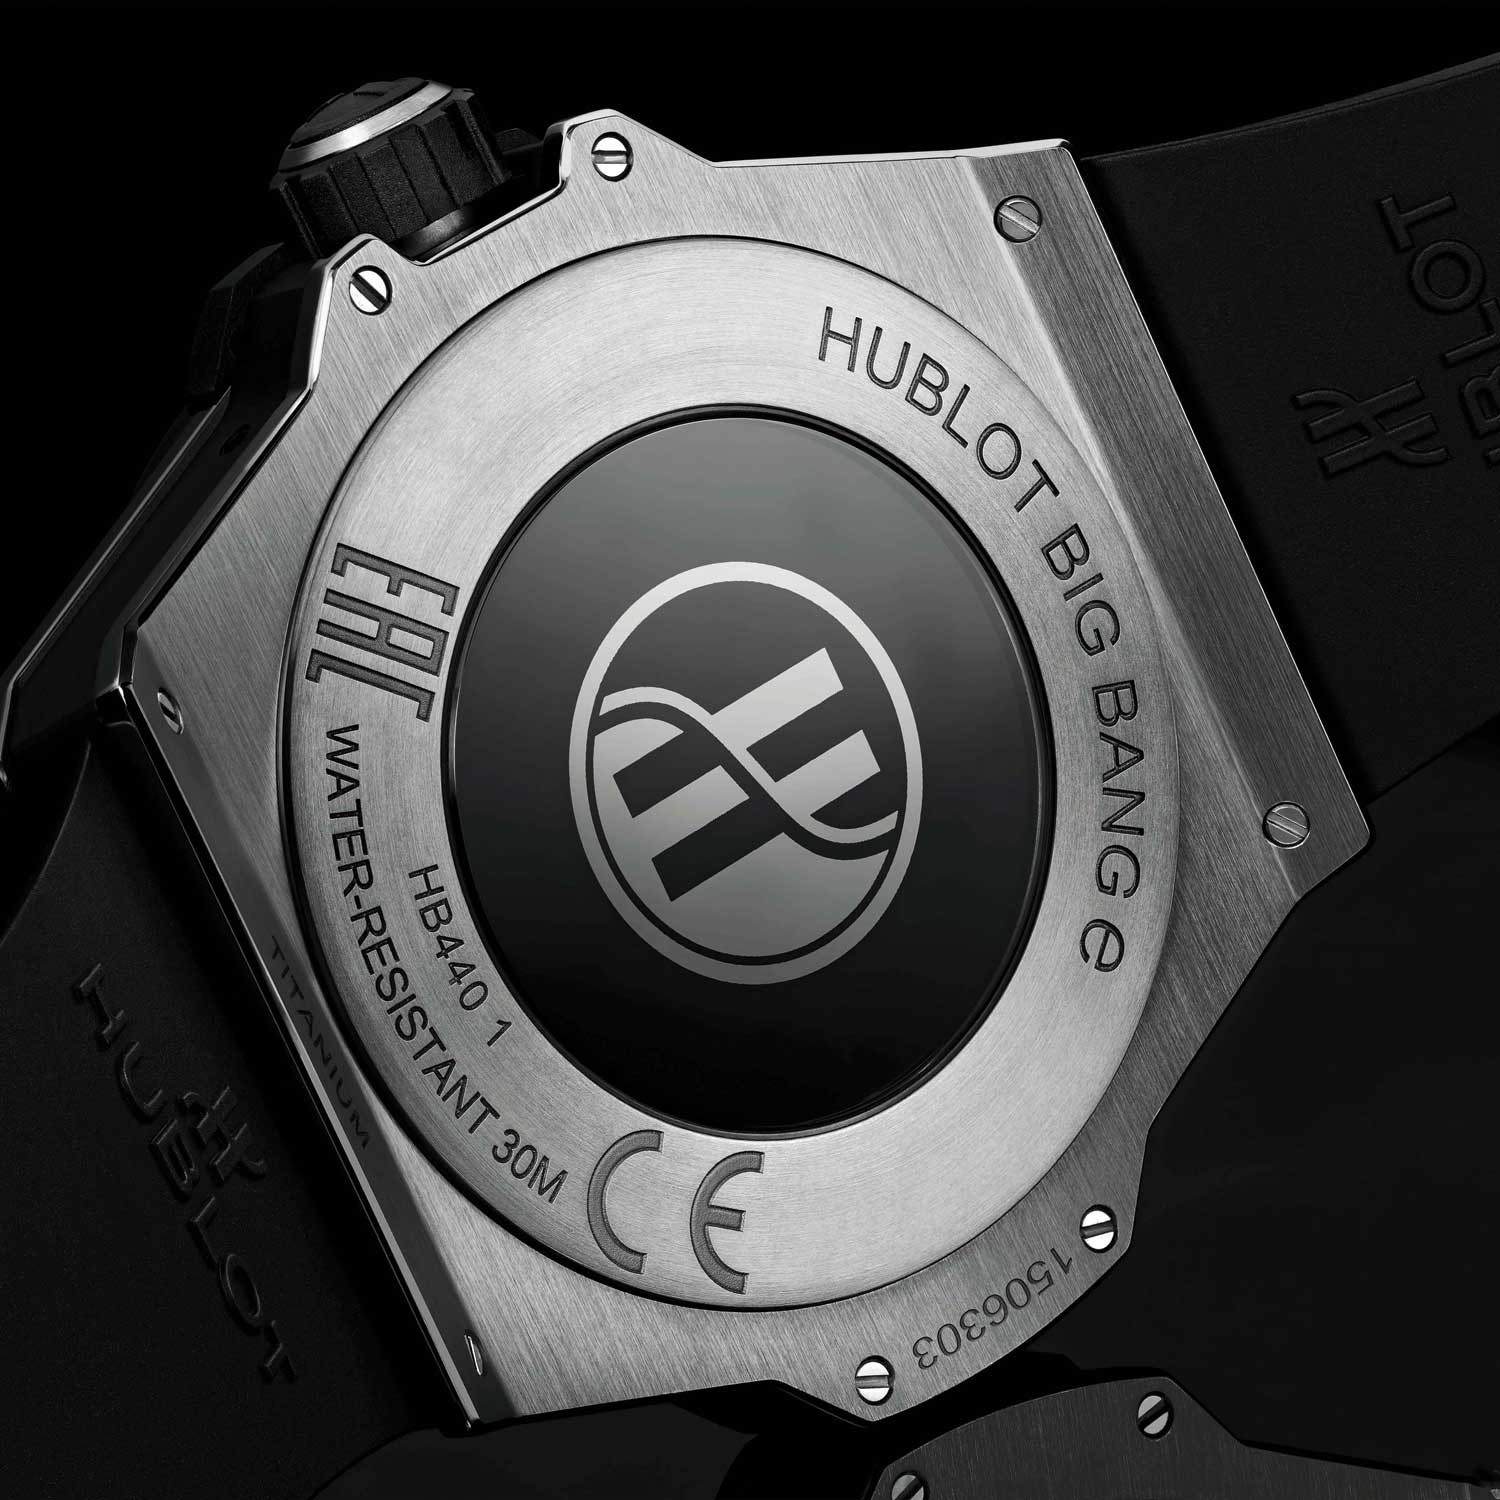 Caseback of the Hublot Big Bang E in titanium showing the induction charging surface